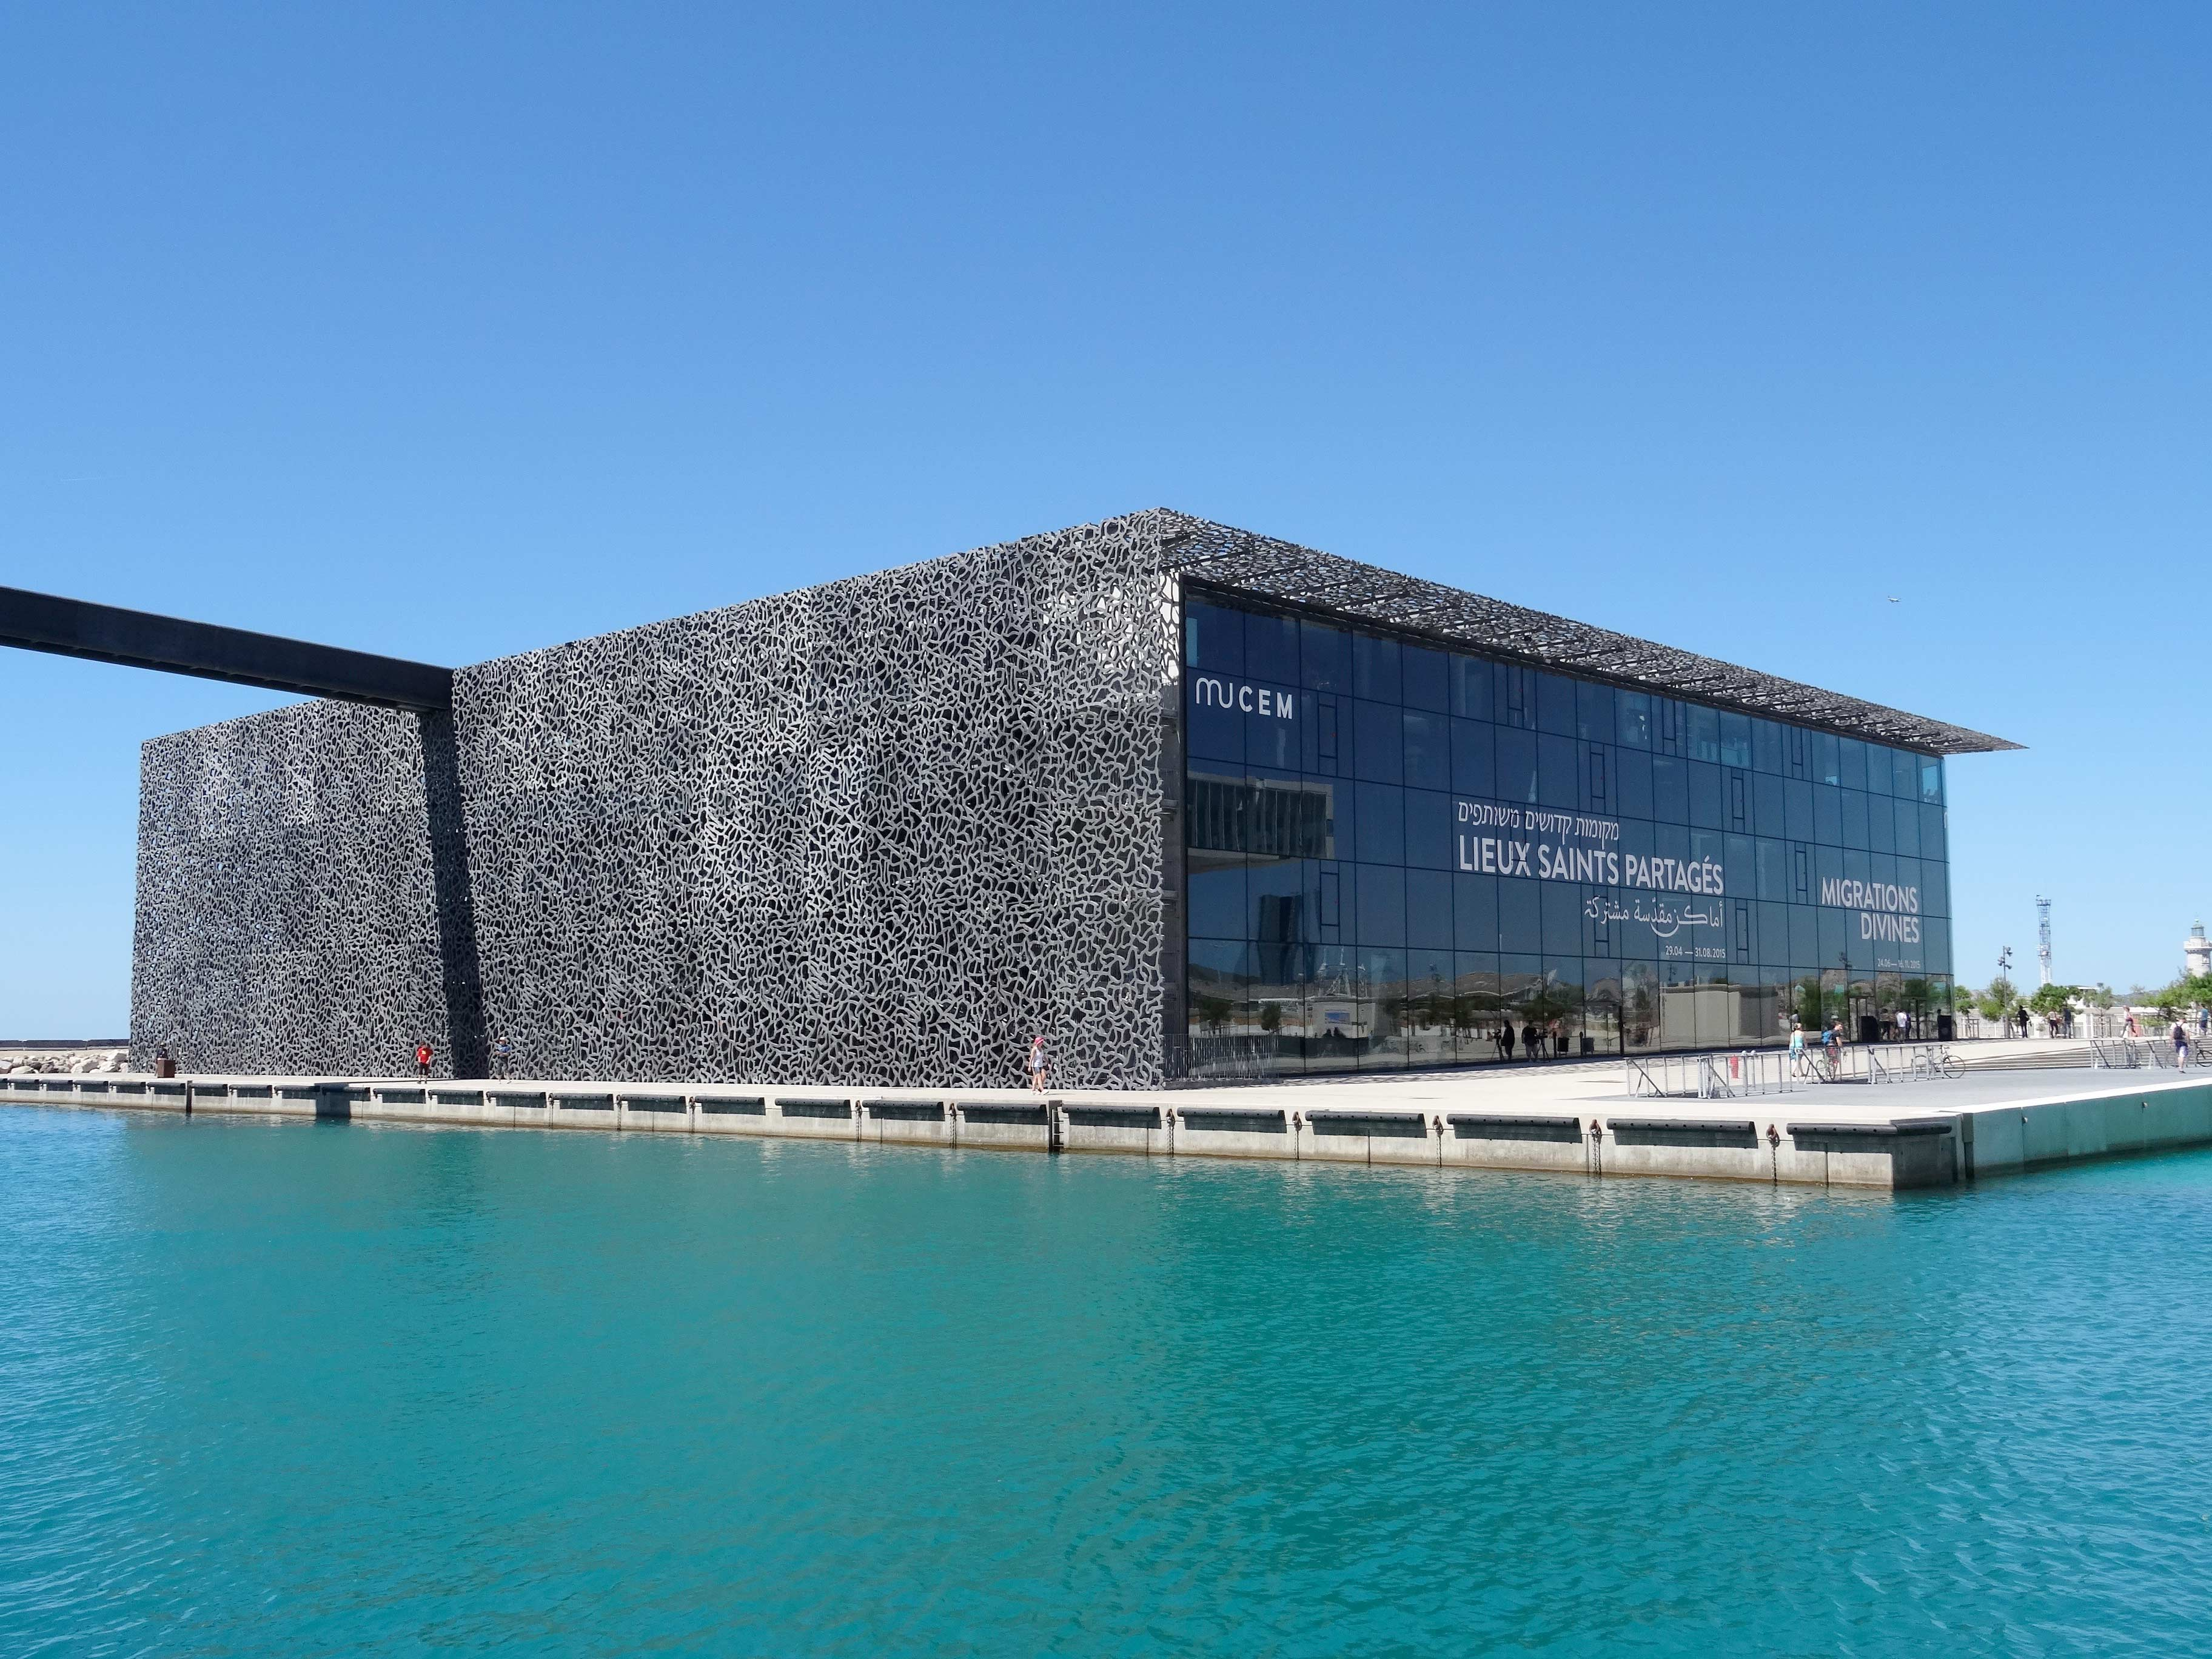 Shore excursion, Mucem, Marseille